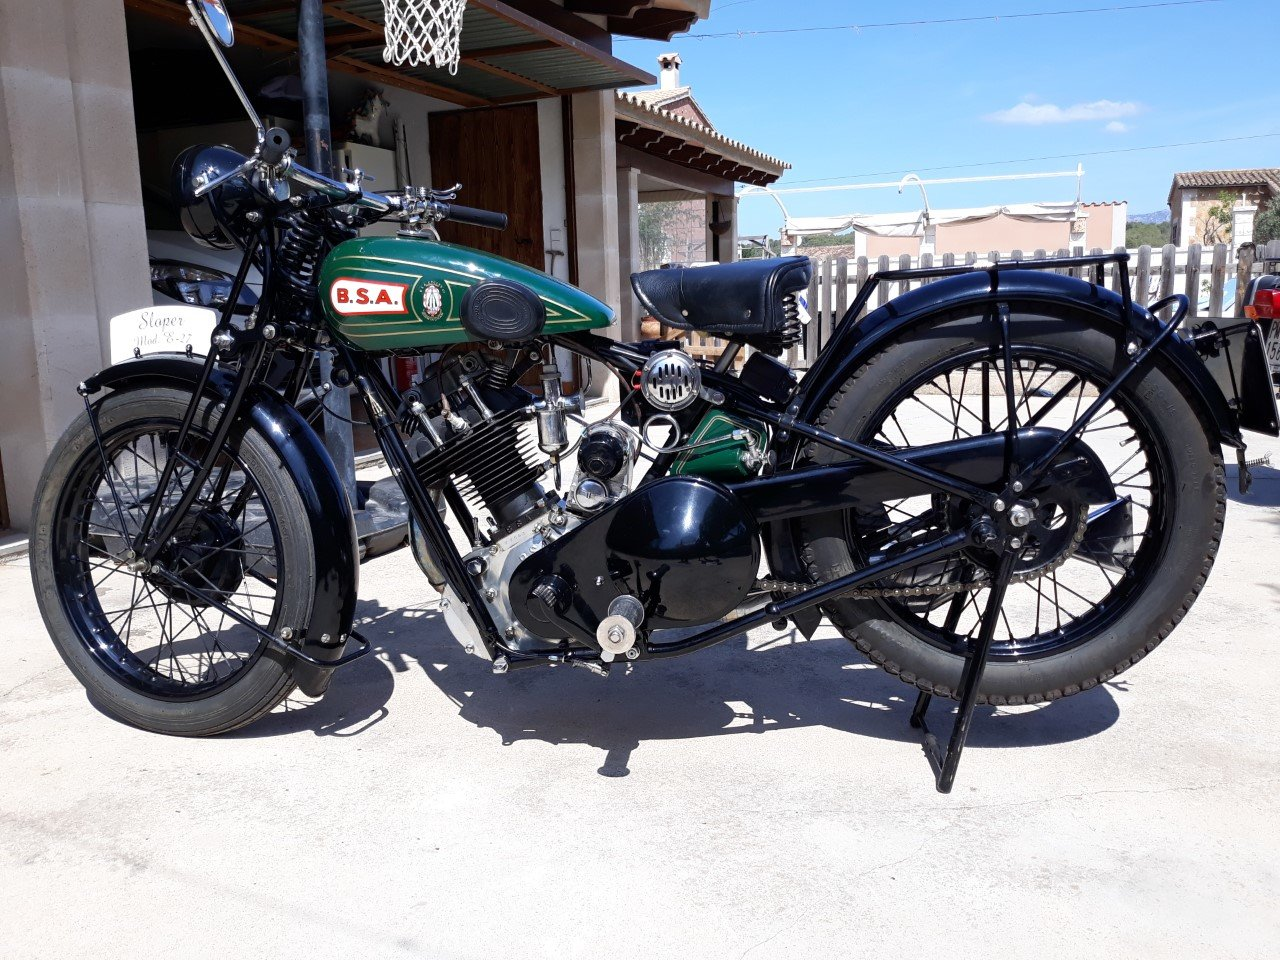 1927 BSA  S27  Sloper  500cc. - restored For Sale (picture 1 of 6)